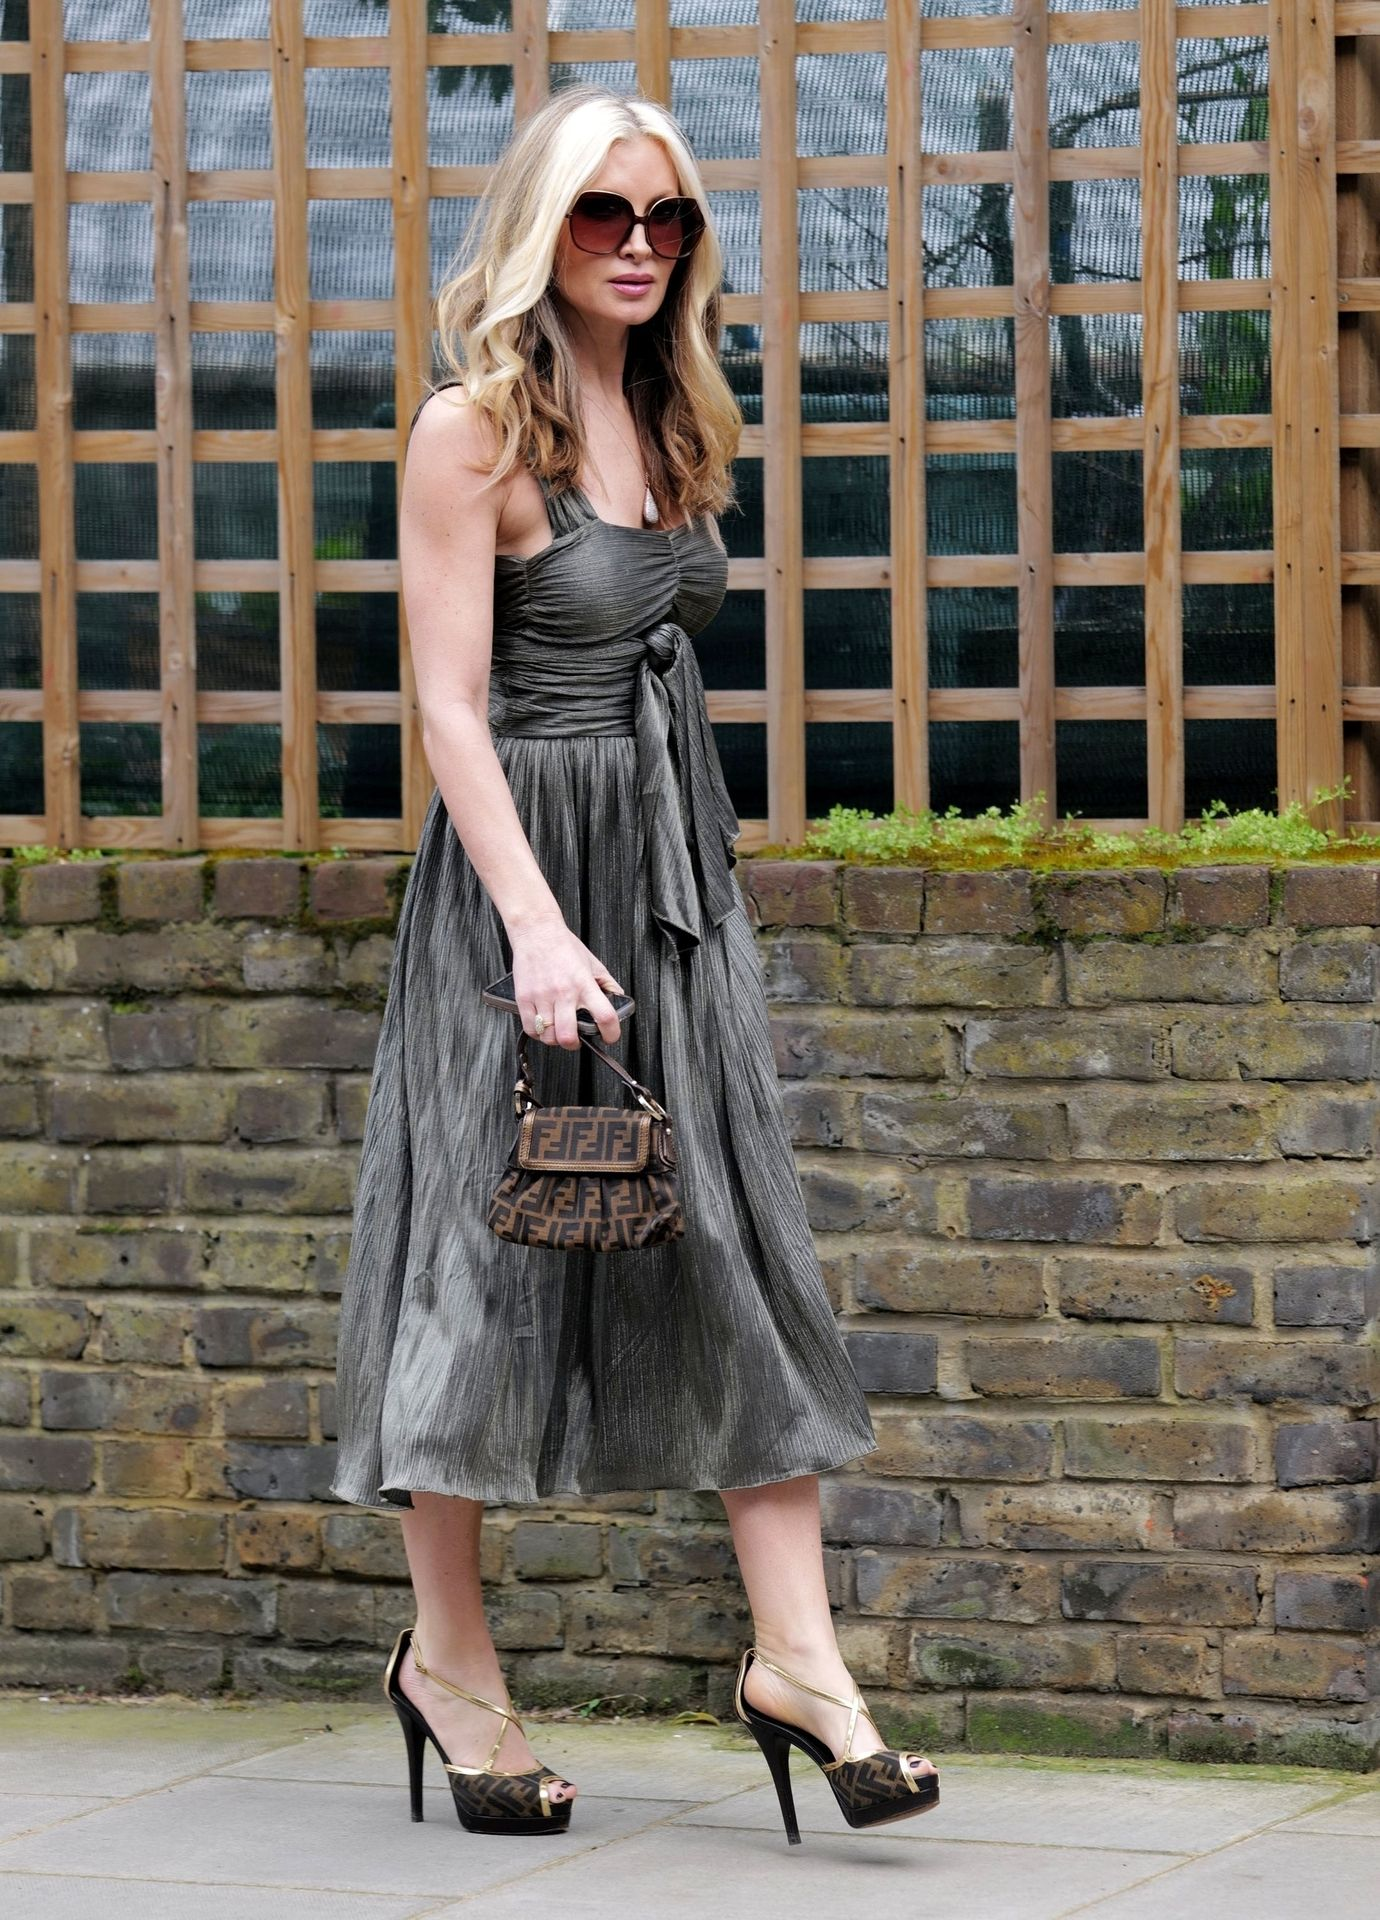 Caprice Bourret Steps Out Looking Glamorous In London 0007